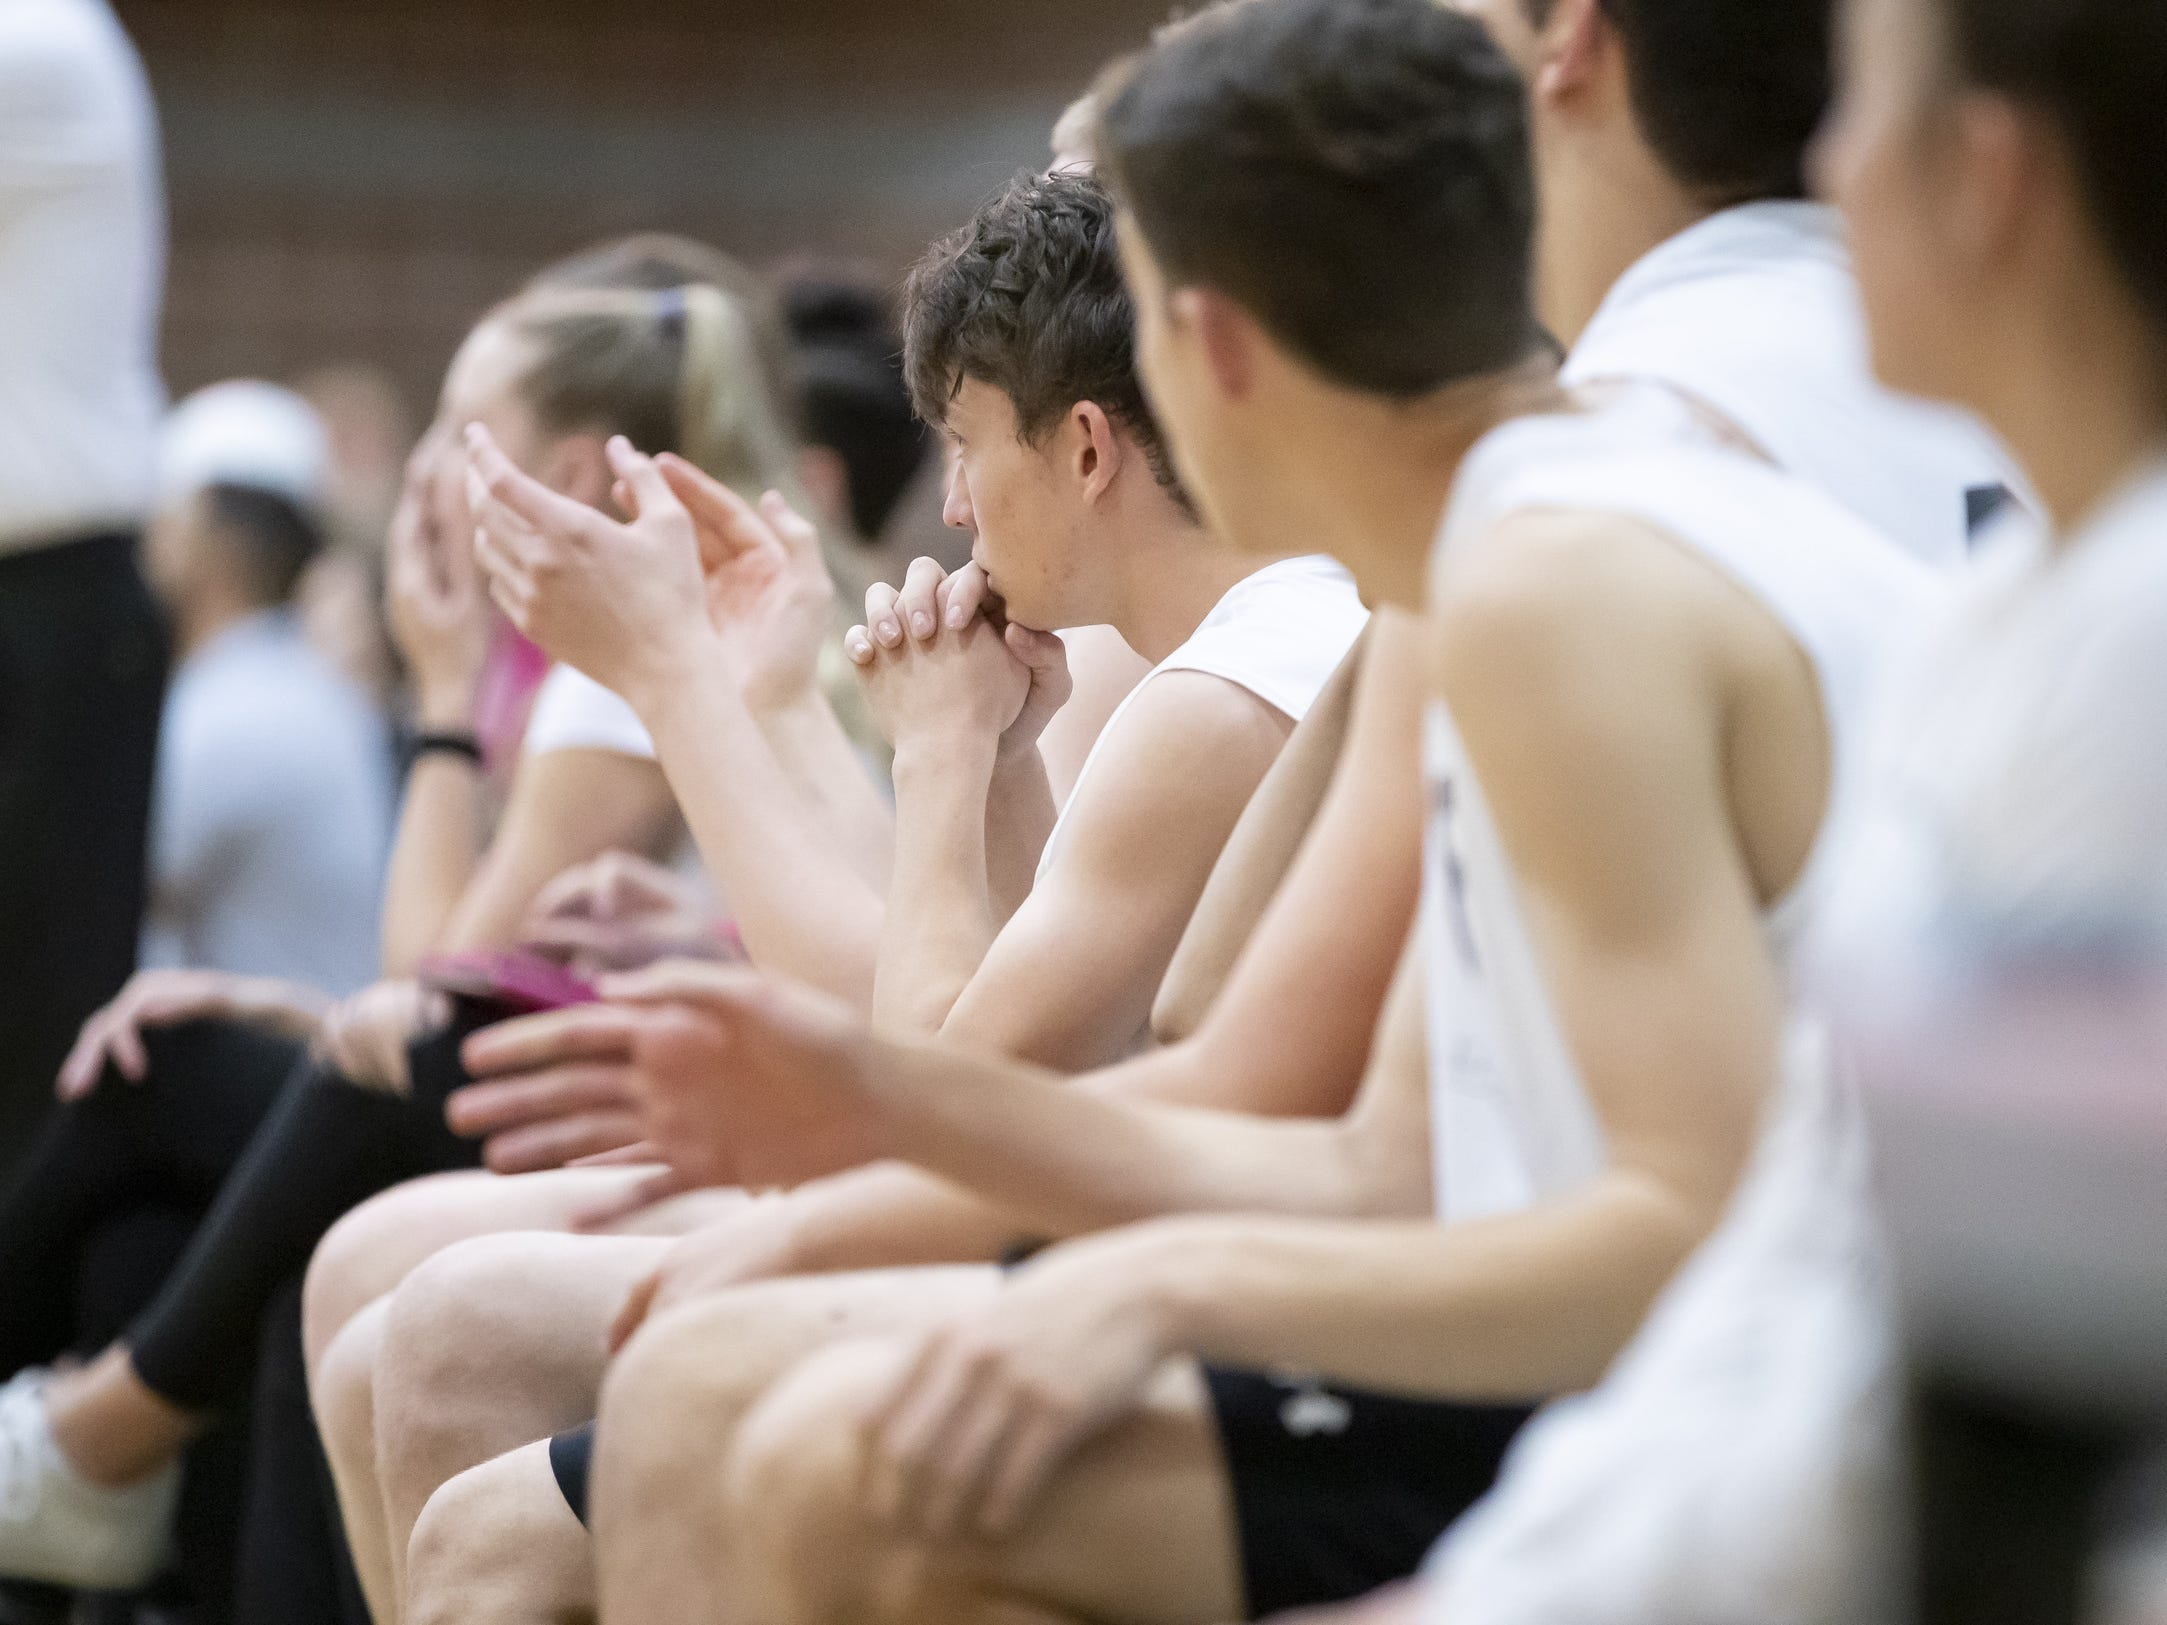 The Tucson Mountain View Mountain Lions look on late in the third match during the 5A Boys Volleyball State Championships against the Campo Verde Coyotes at Higley High School on Saturday, May 11, 2019 in Gilbert, Arizona.